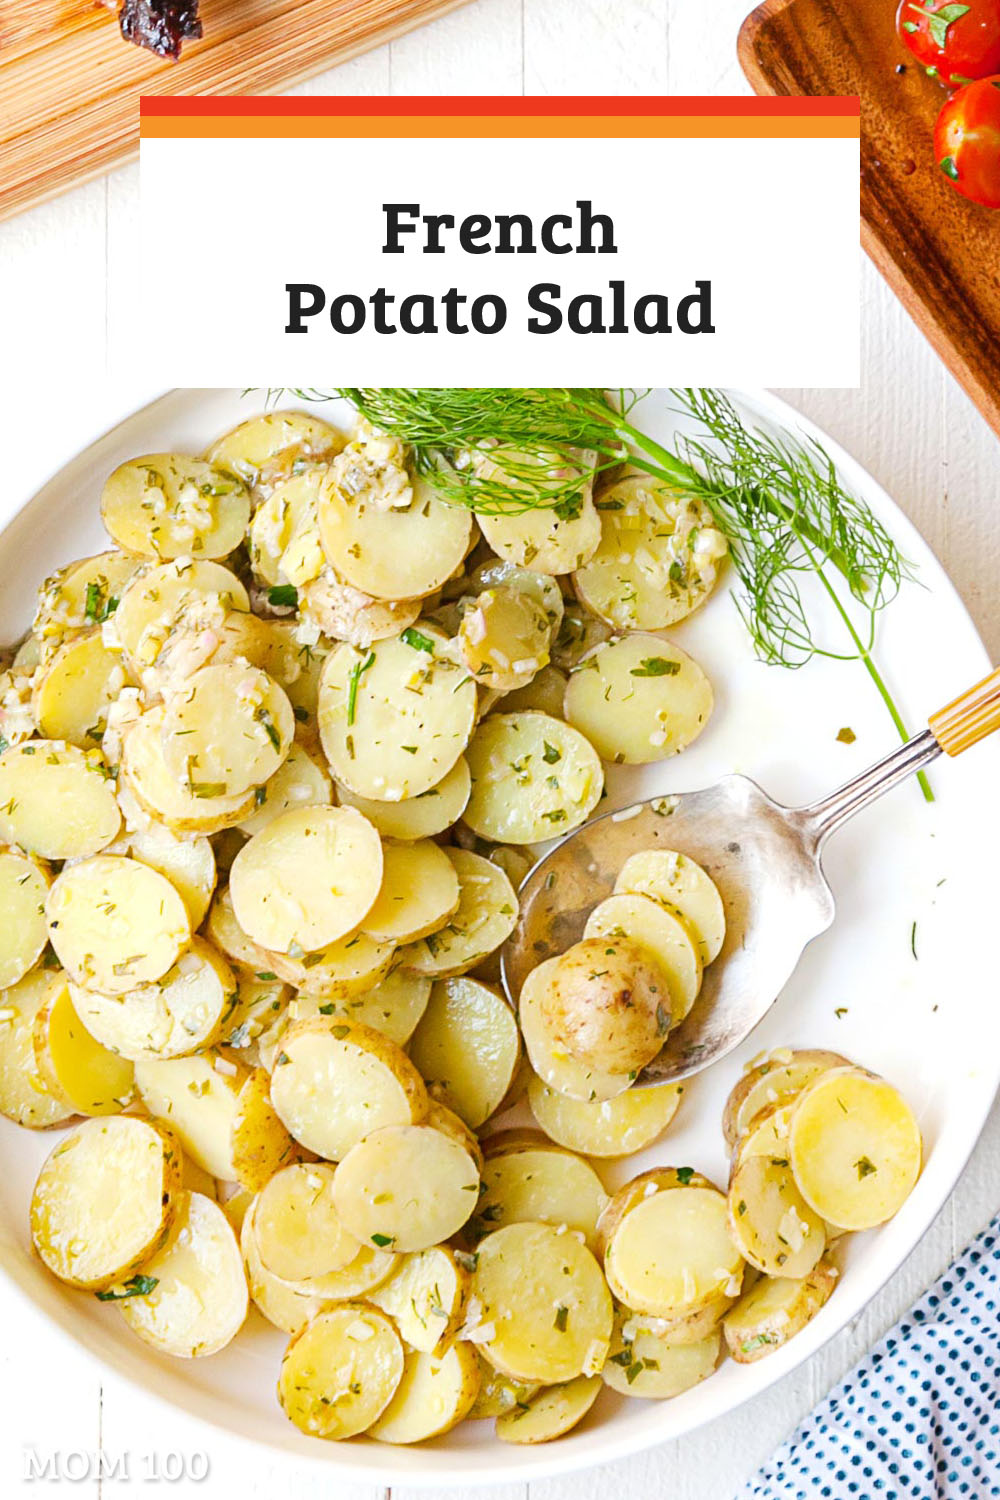 The Best French Potato Salad: This mayo-free potato salad is very clean tasting, with fresh herbs and a touch of mustard and a lovely vinaigrette dressing. #sidedish #vegetarian #mayofree